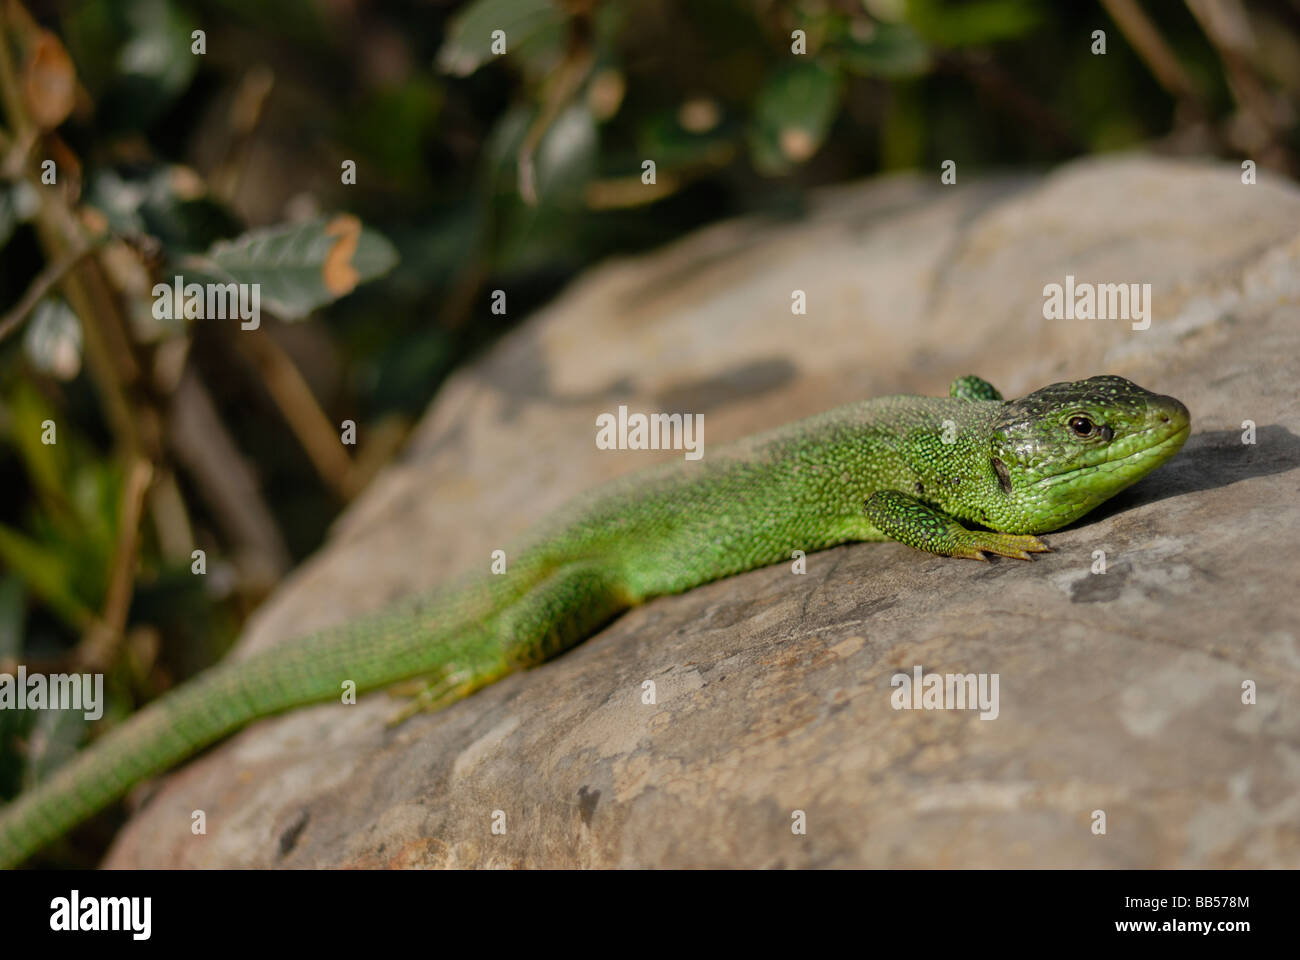 European green lizard Lacerta viridis, Lacertidae, Luni sul Mignone, Tolfa Mountains, Viterbo, Lazio, Italy Stock Photo